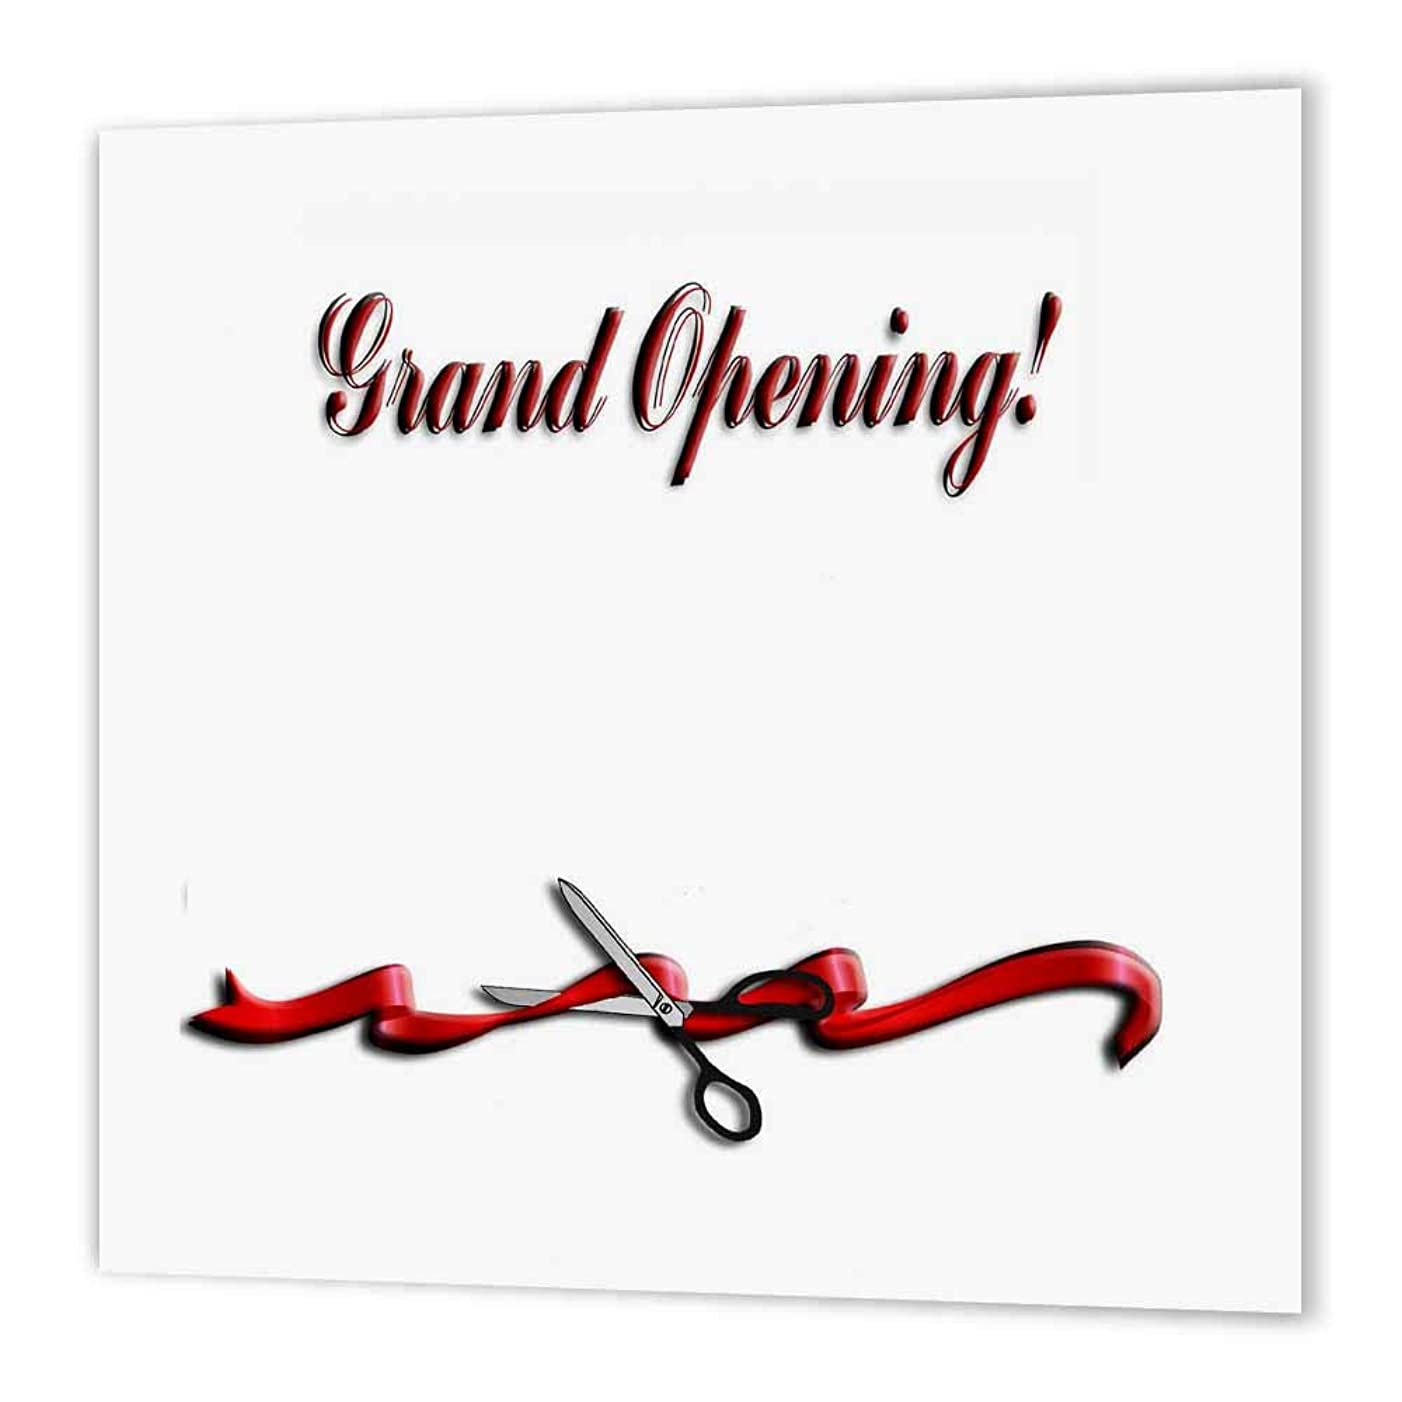 3dRose ht_43334_3 Grand Opening, Business, Ribbon and Scissors-Iron on Heat Transfer Paper for White Material, 10 by 10-Inch